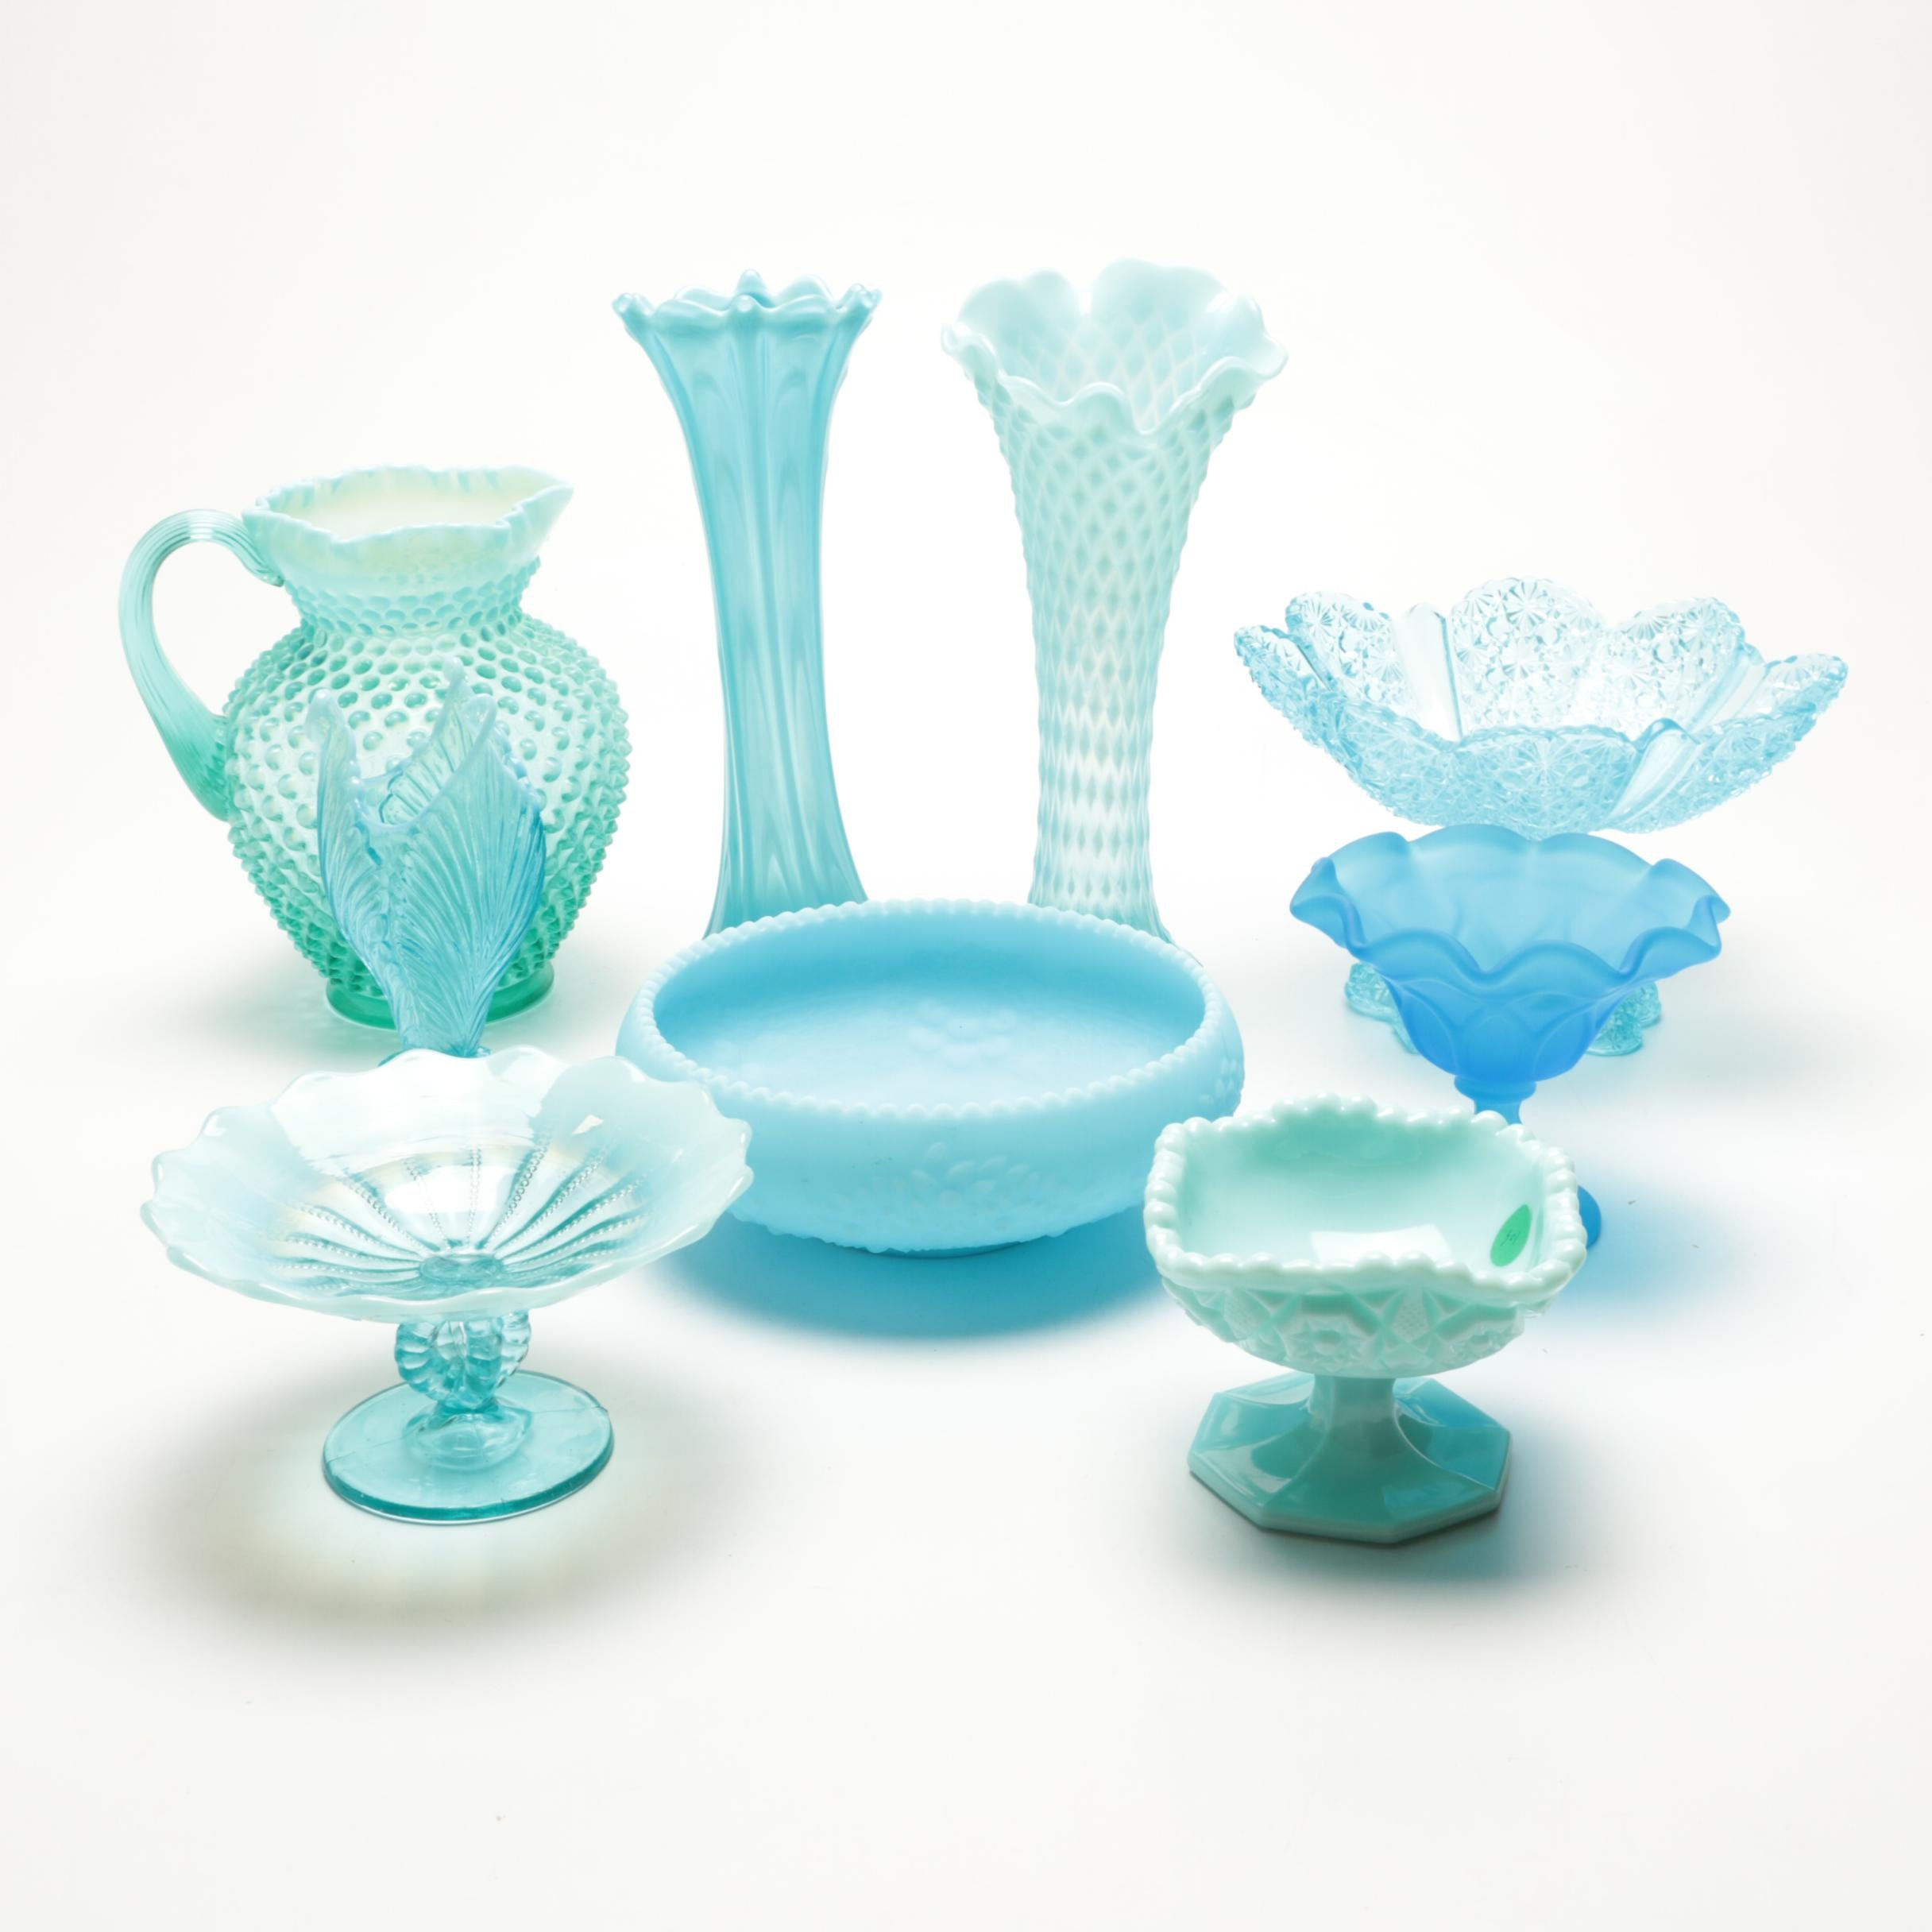 Collection of Glass Decor in Blue Including a Fenton Pitcher